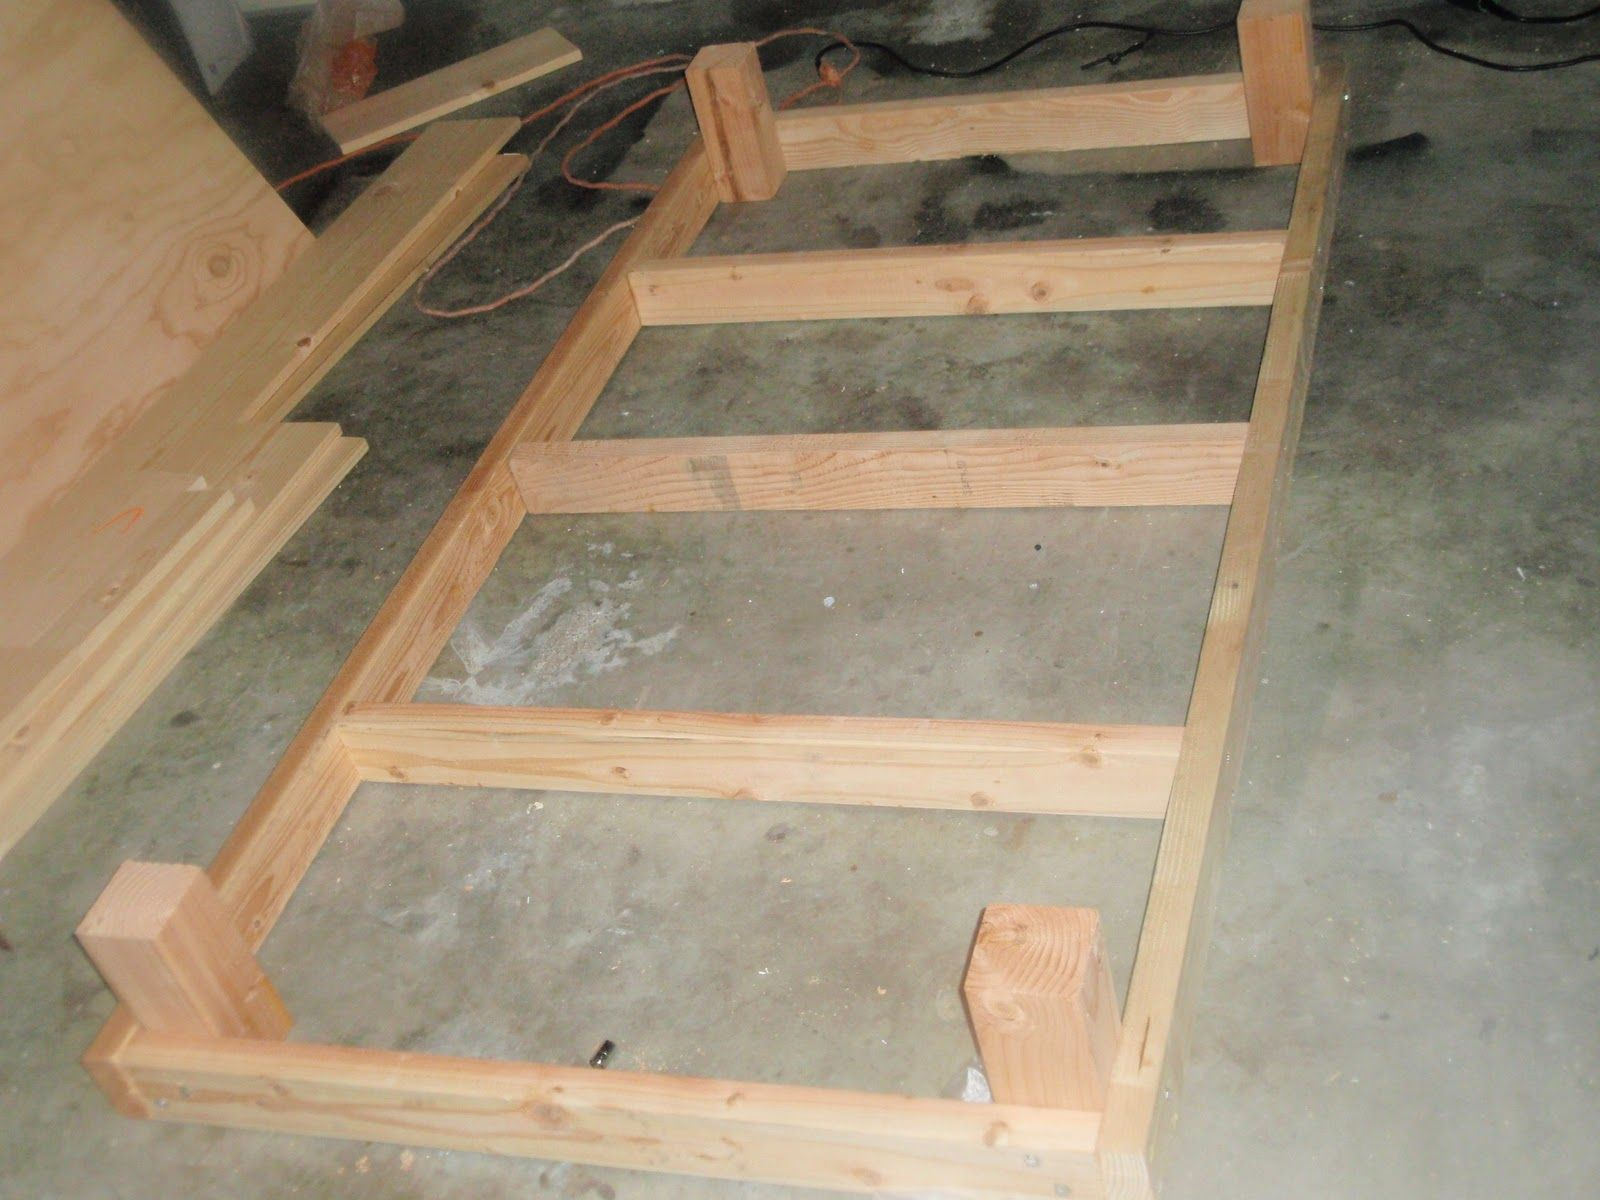 build a twin platform bed frame Easy Woodworking